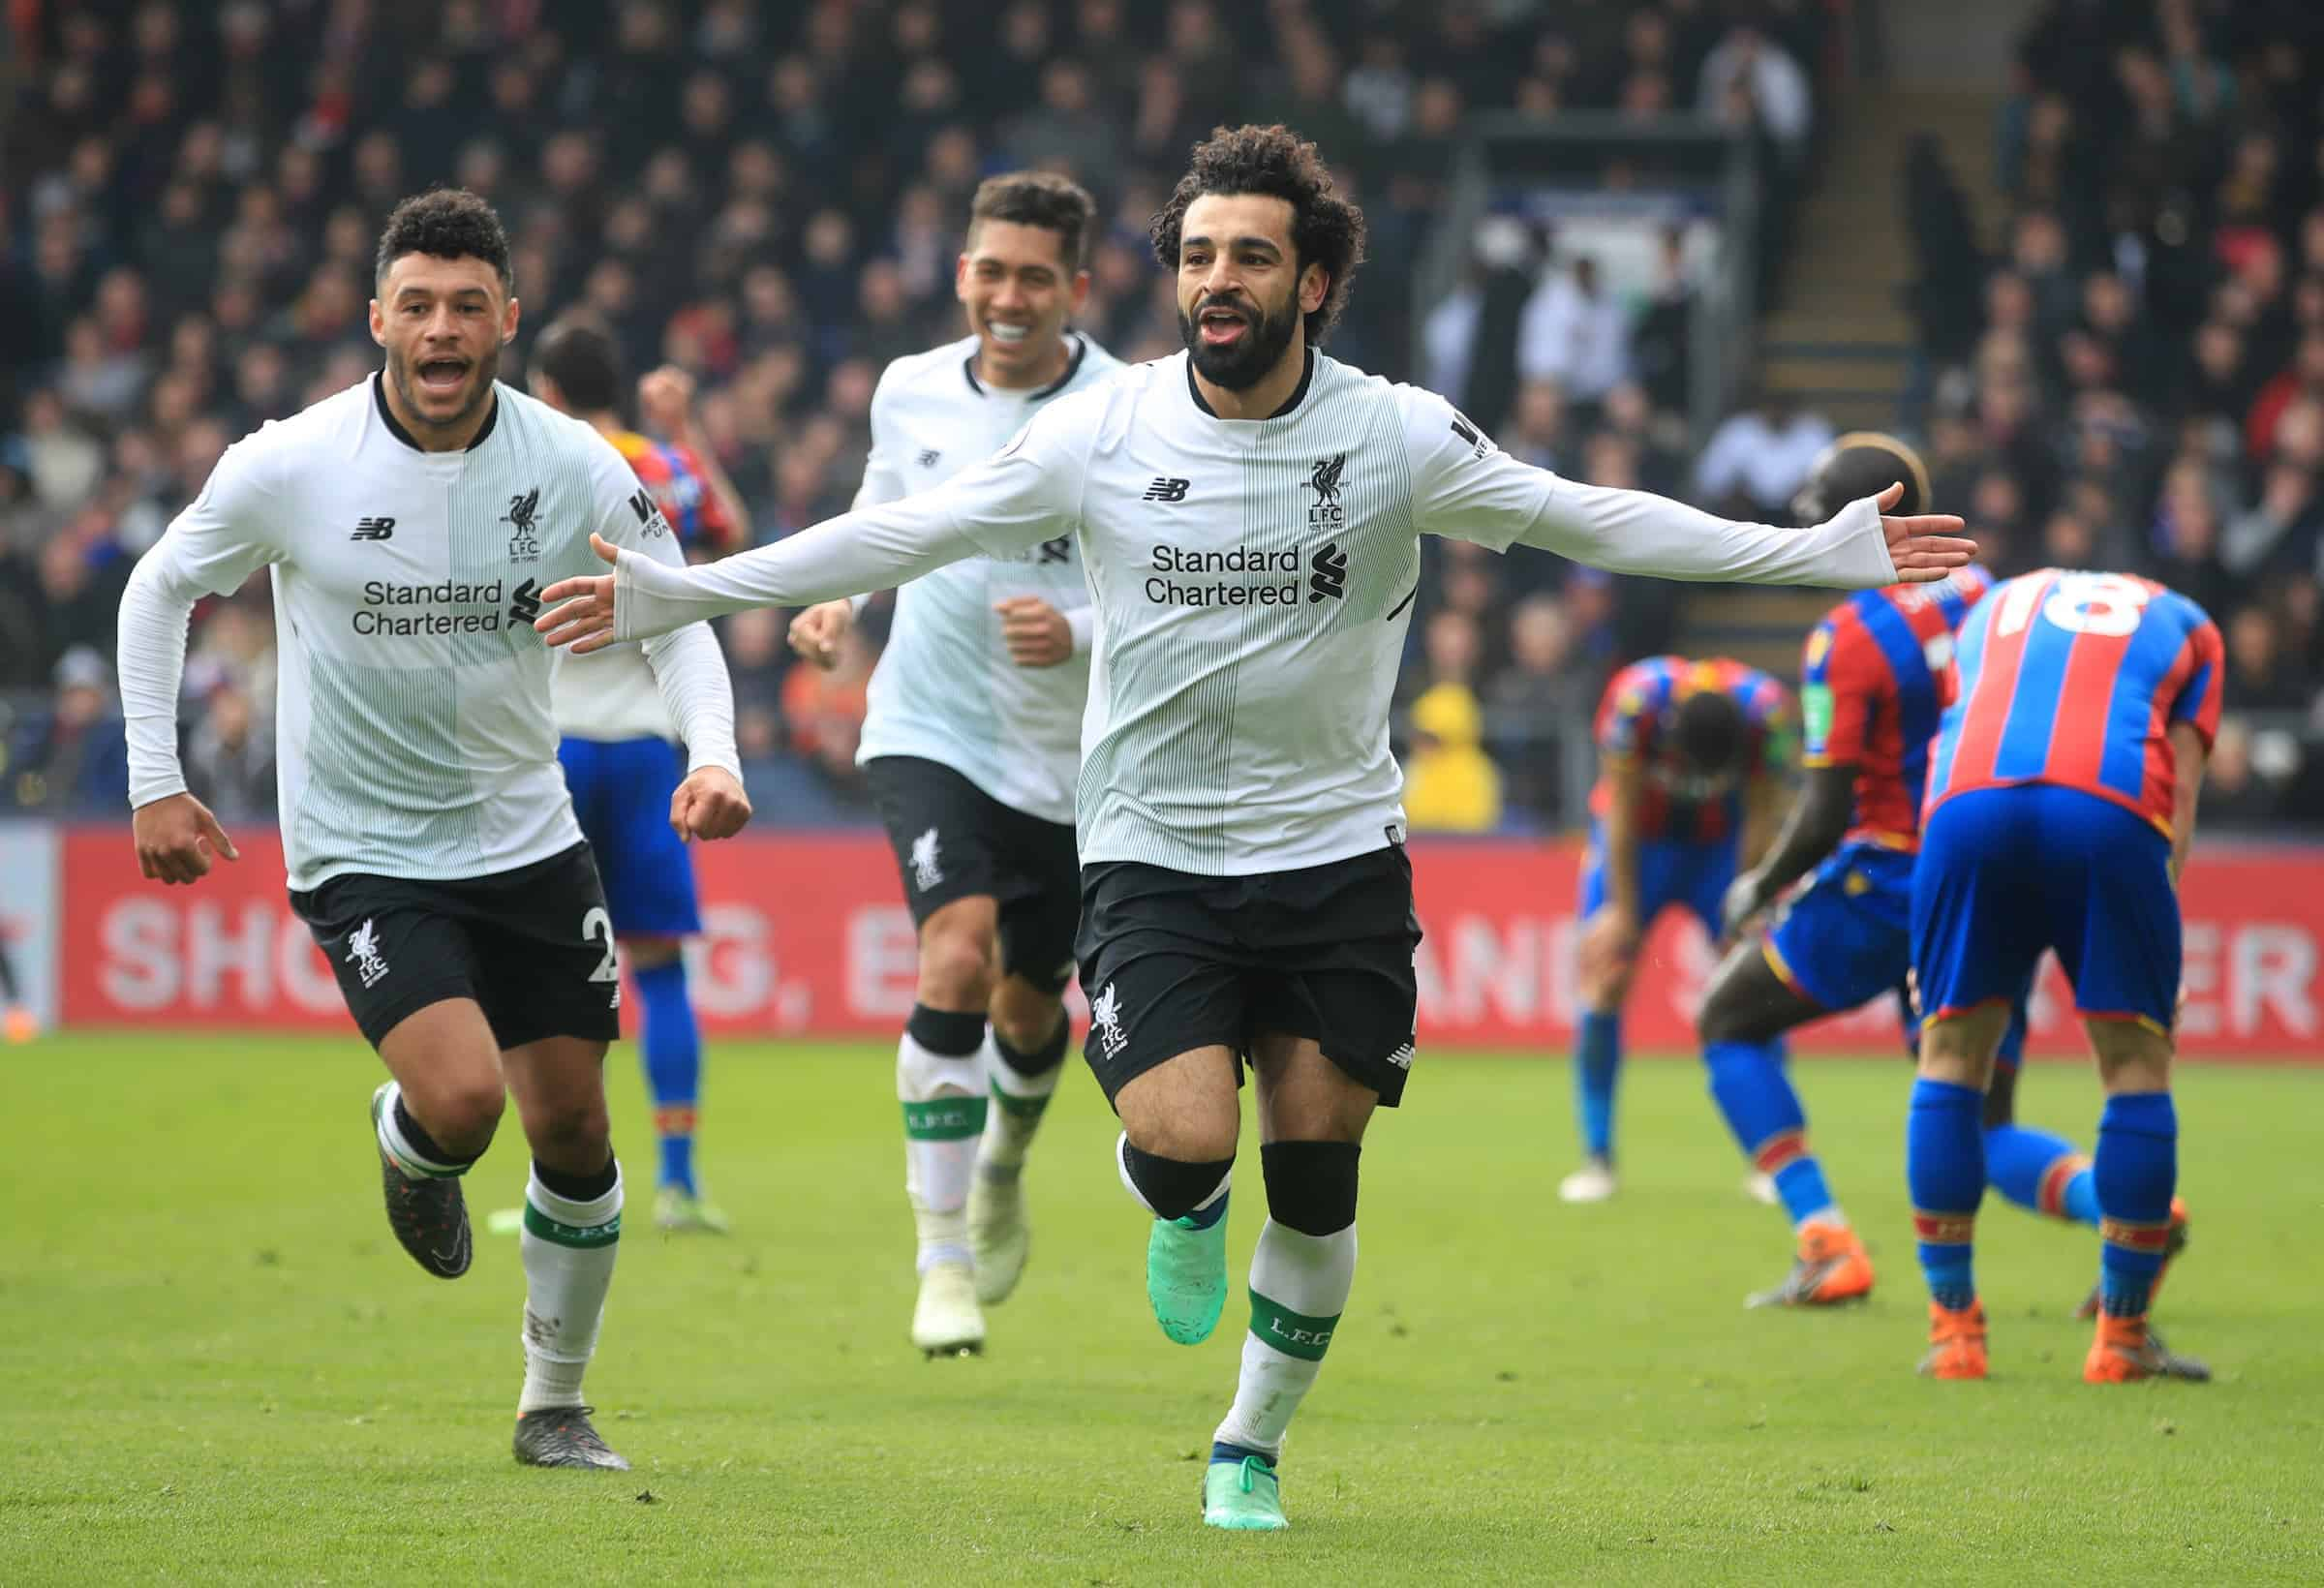 Liverpool's Mohamed Salah celebrates scoring his side's second goal of the game during the Premier League match at Selhurst Park, London. (Adam Davy/PA Wire/PA Images0